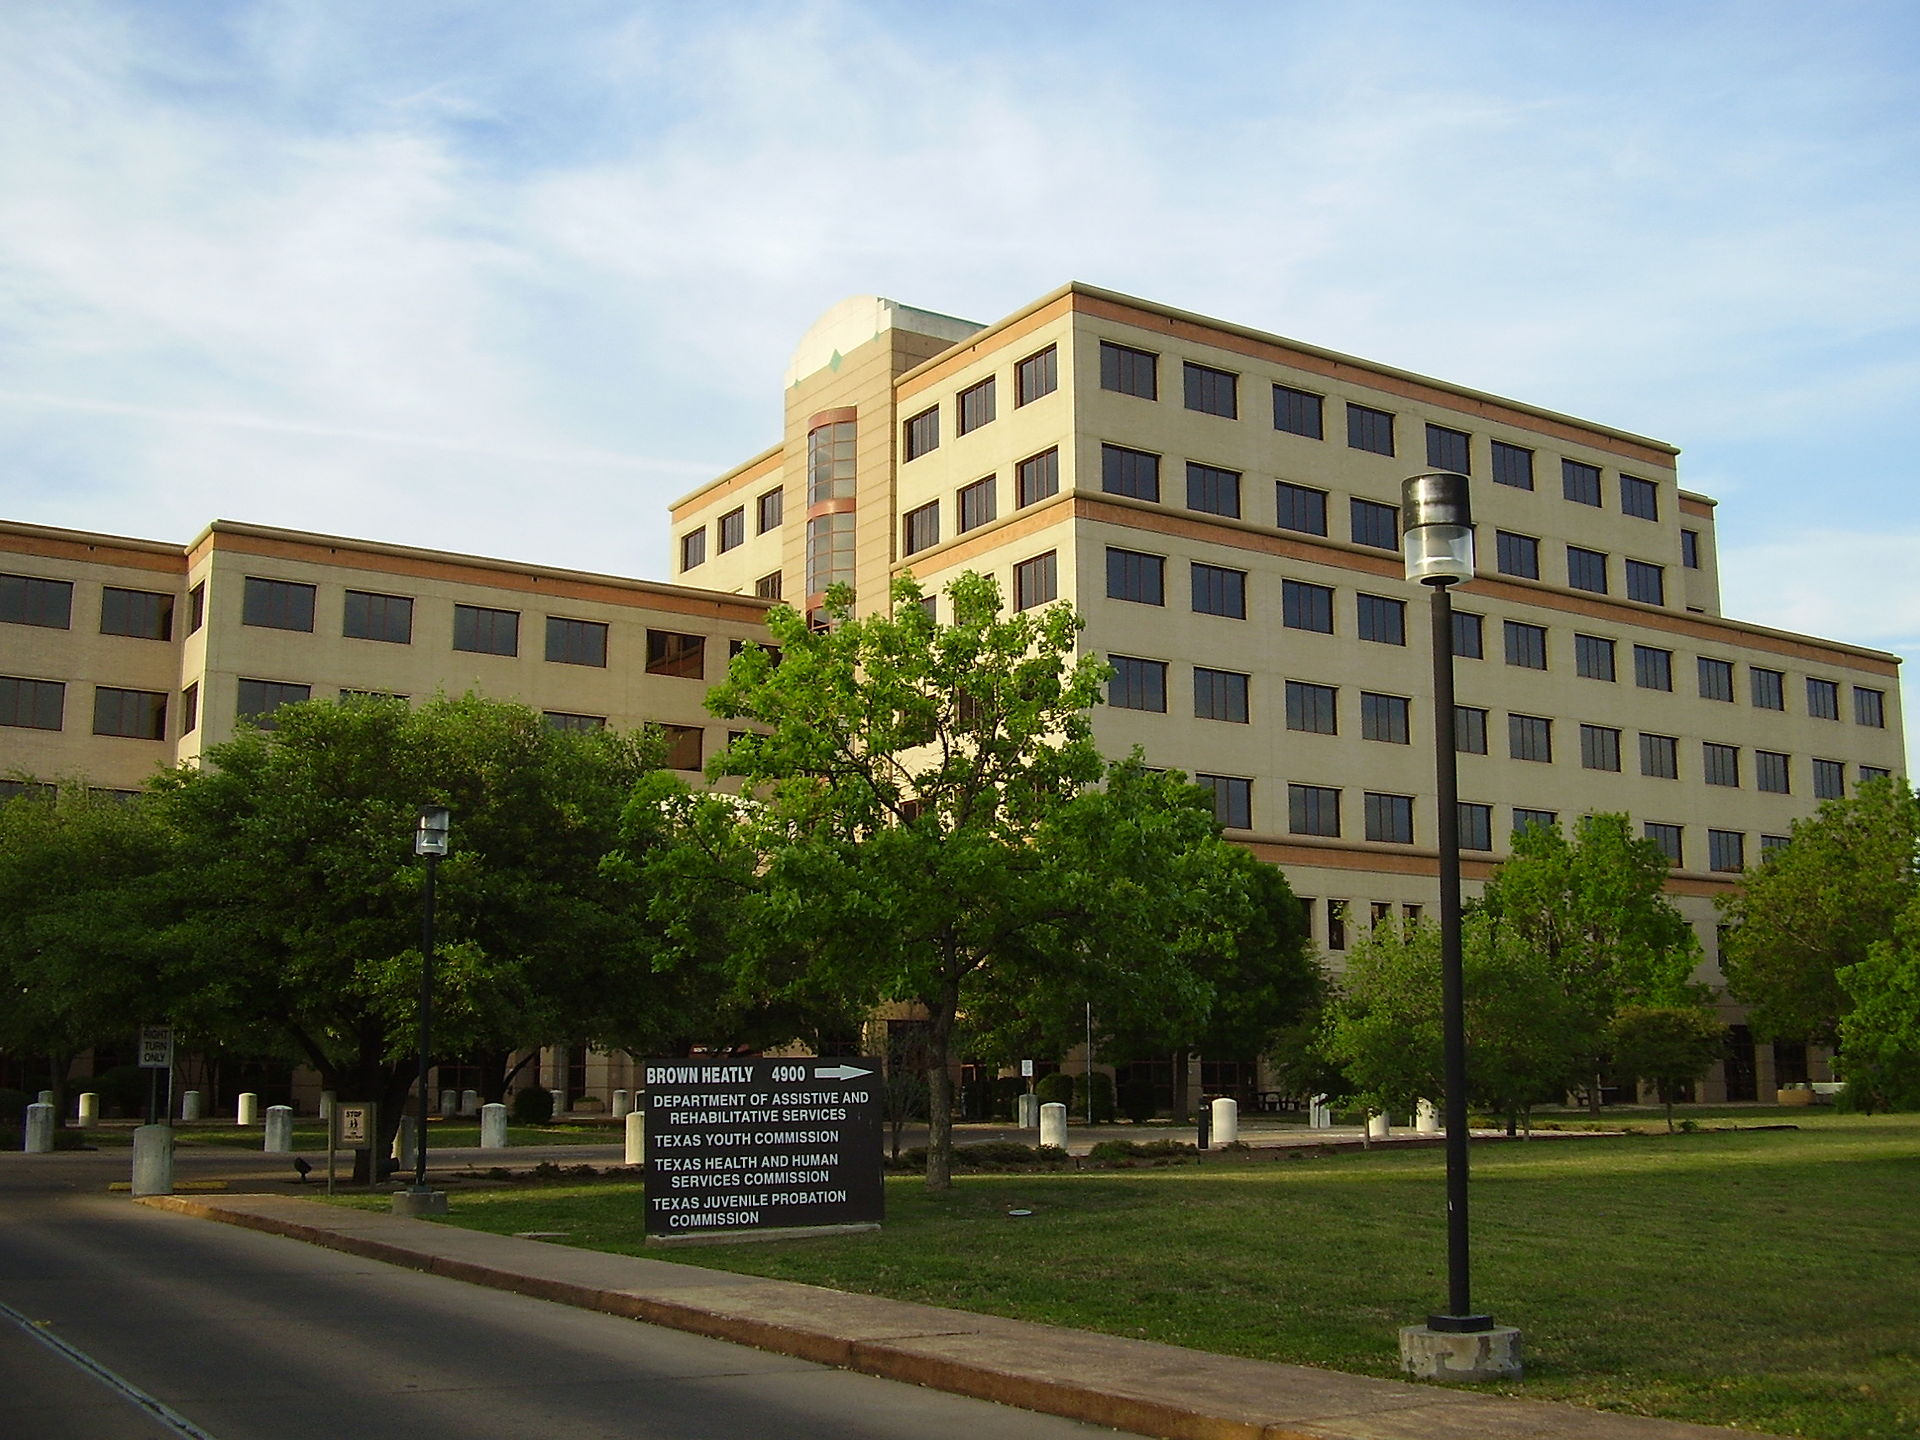 Texas juvenile justice department wikipedia for Building a house in texas